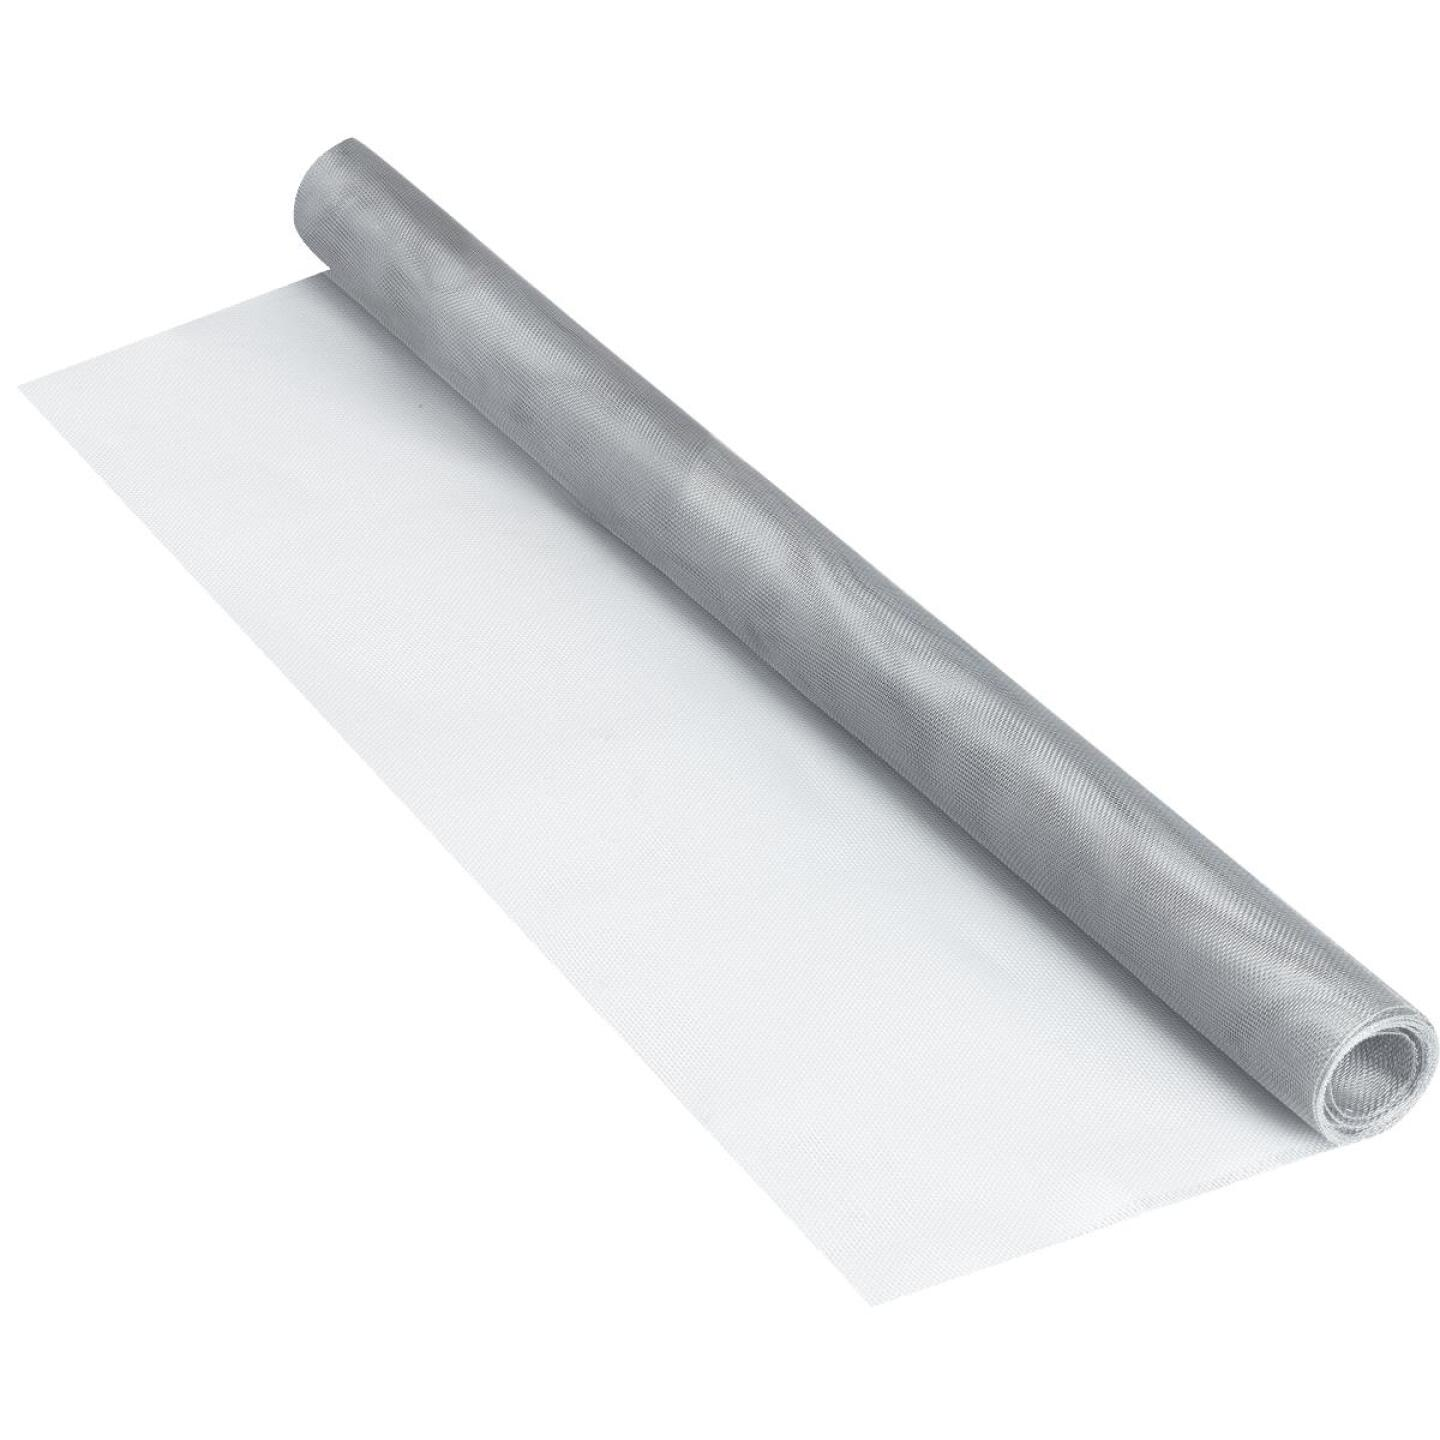 Phifer 36 In. x 84 In. Brite Aluminum Screen Ready Rolls Image 2